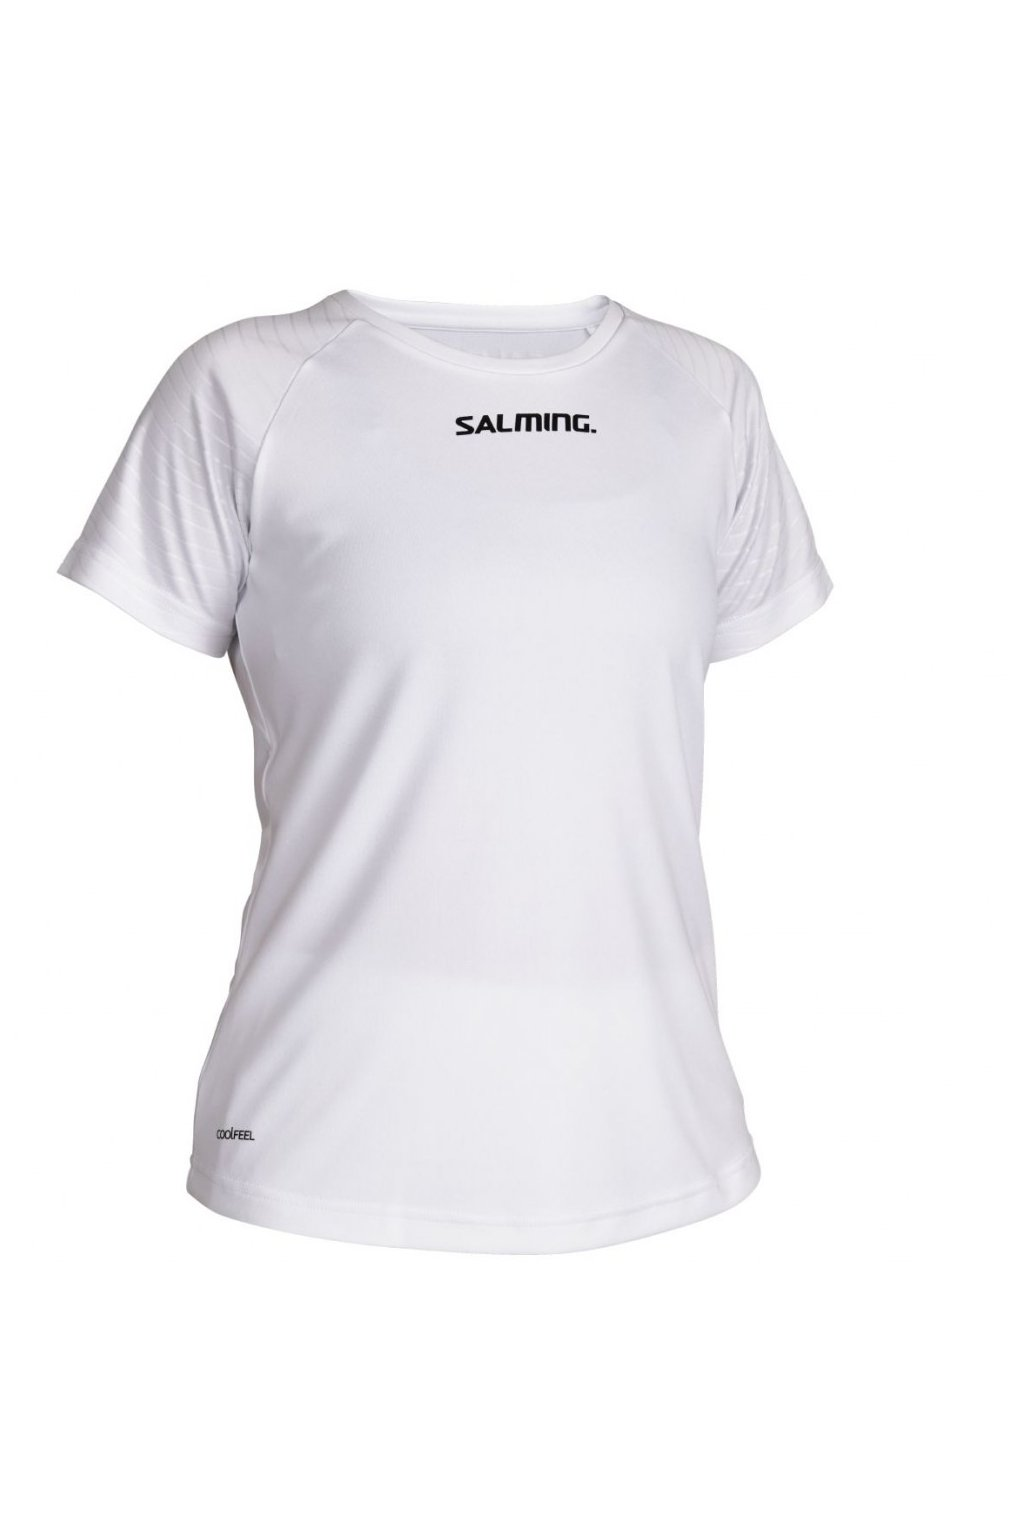 salming diamond game tee women (7)